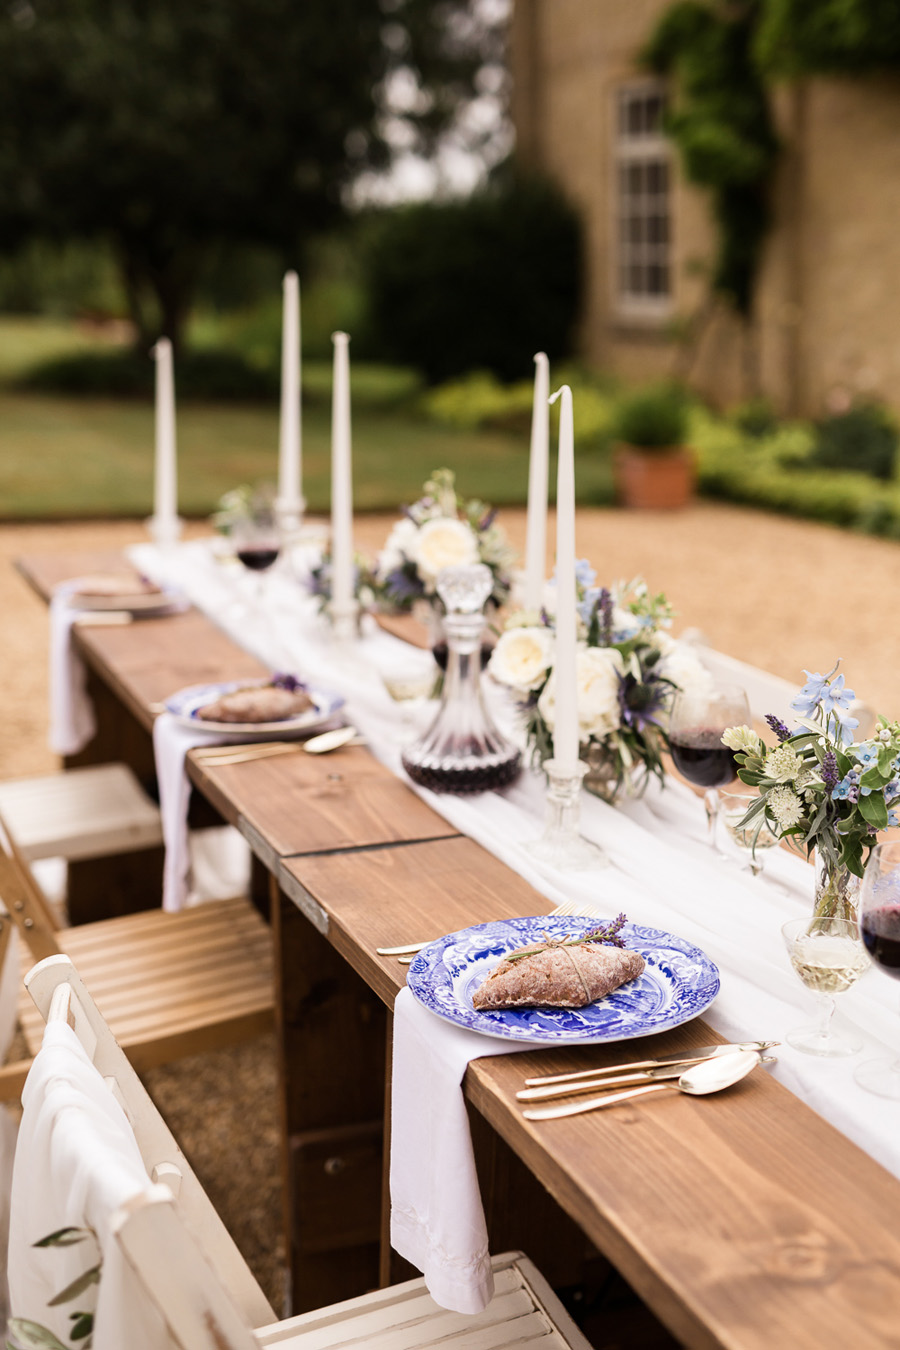 Cambridgeshire venue Lattenbury Hill wedding style ideas. Images by Sarah Brookes Photography (9)